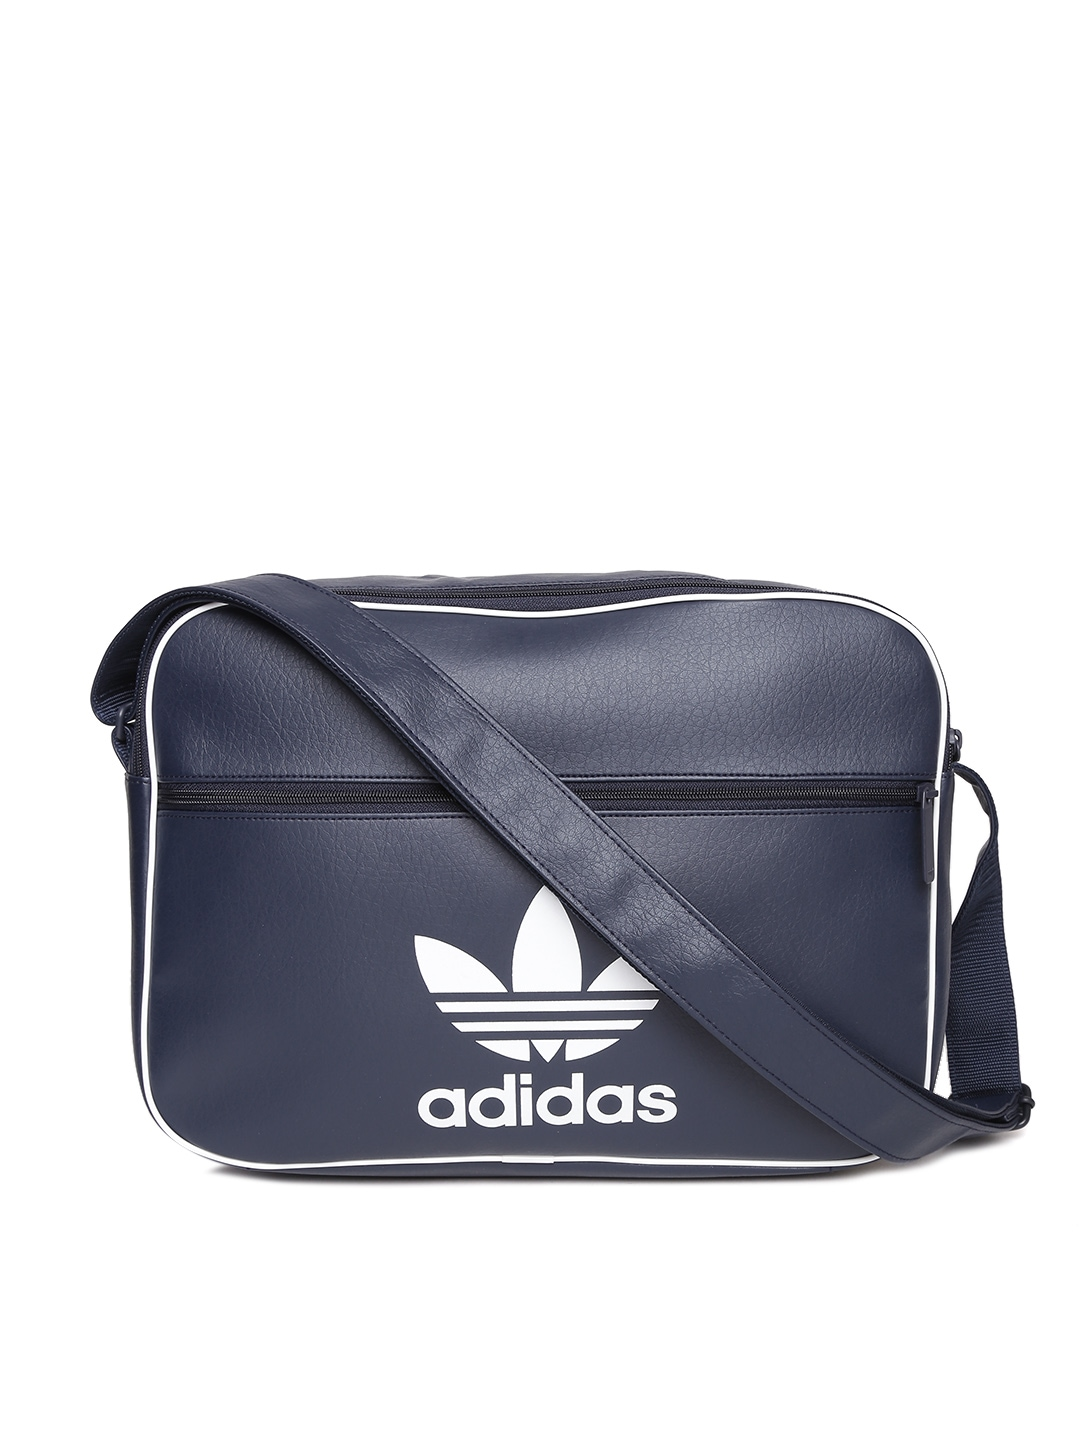 5cf4d2070044 Adidas Originals Unisex Navy Airliner AC CL Messenger Bag price Myntra. Bags  Deals at Myntra. Adidas Originals Unisex Navy Airliner AC CL Messenger Bag  ...